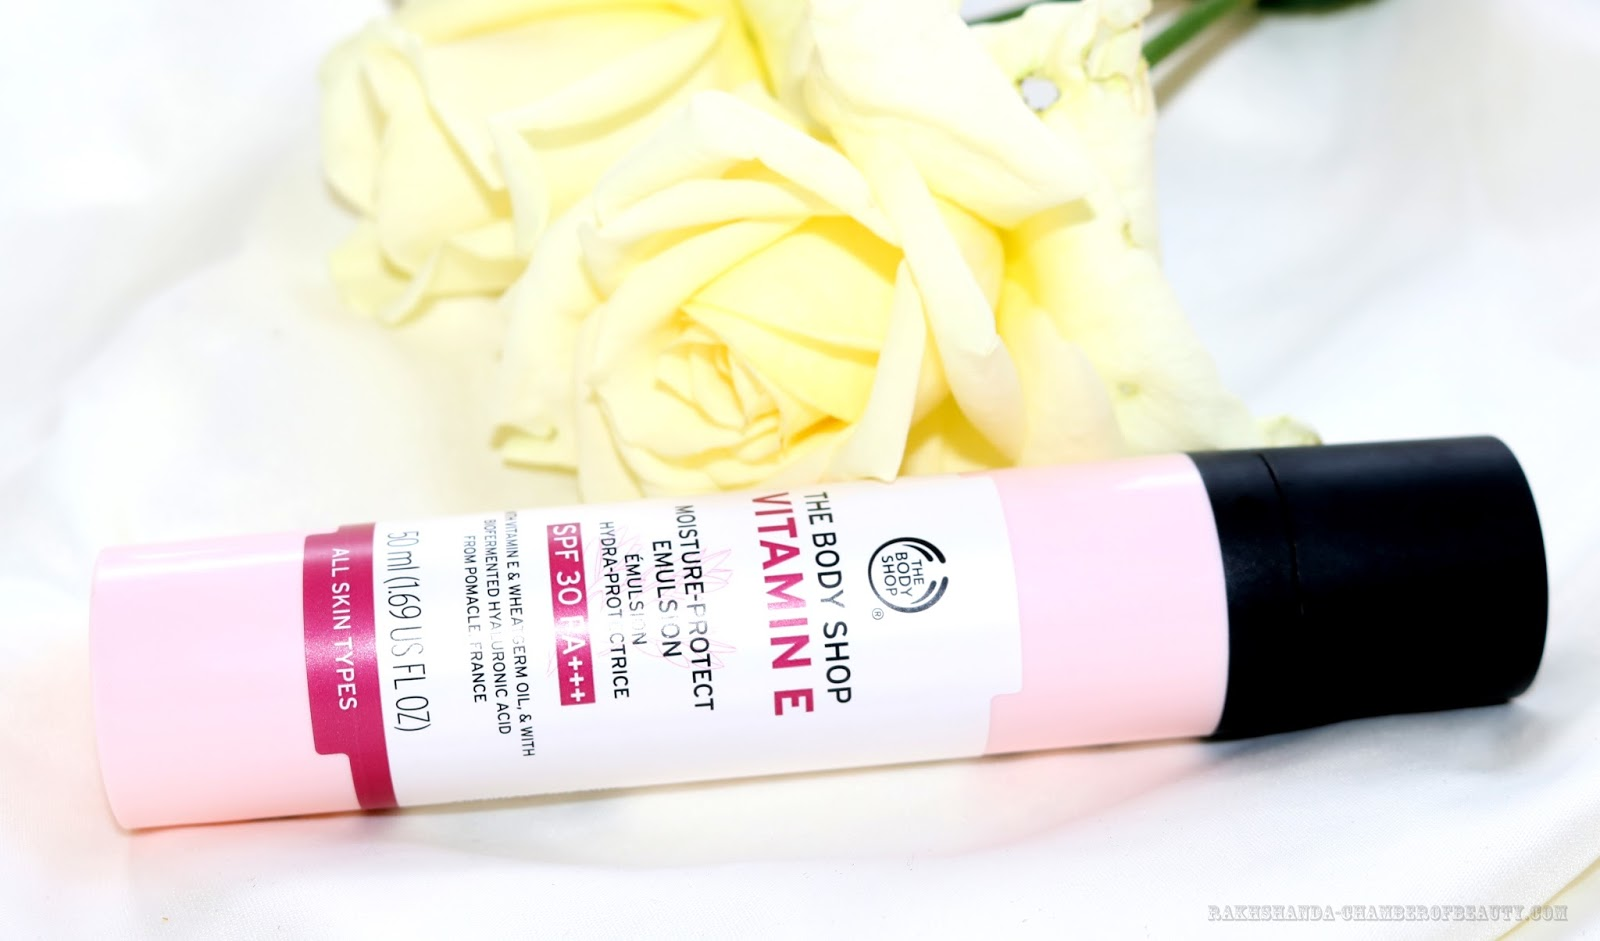 Review - The Body Shop Vitamin E Moisture-Protect Emulsion SPF30/PA+++,Indian beauty blogger, rakhshanda-chamberofbeauty.com